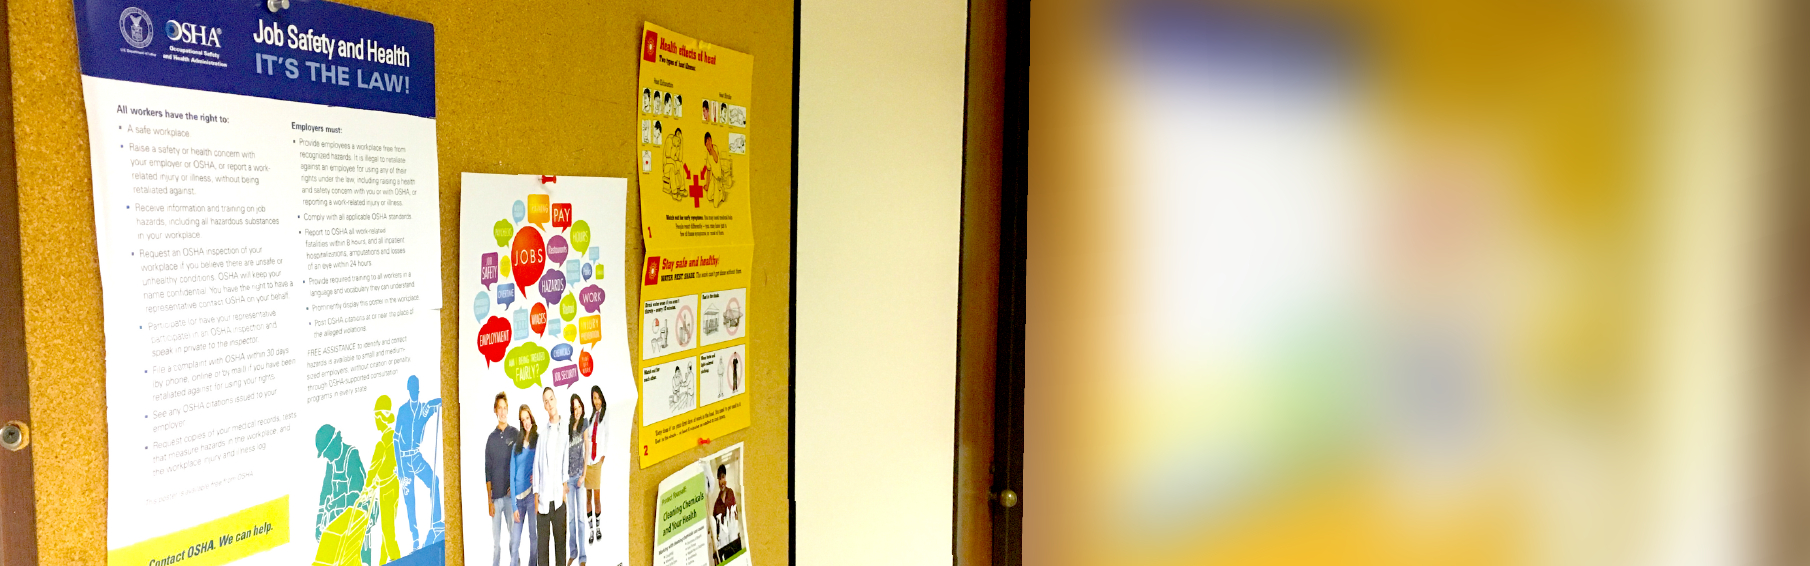 Osha Publications | Occupational Safety And Health Administration - Free Printable Osha Safety Posters